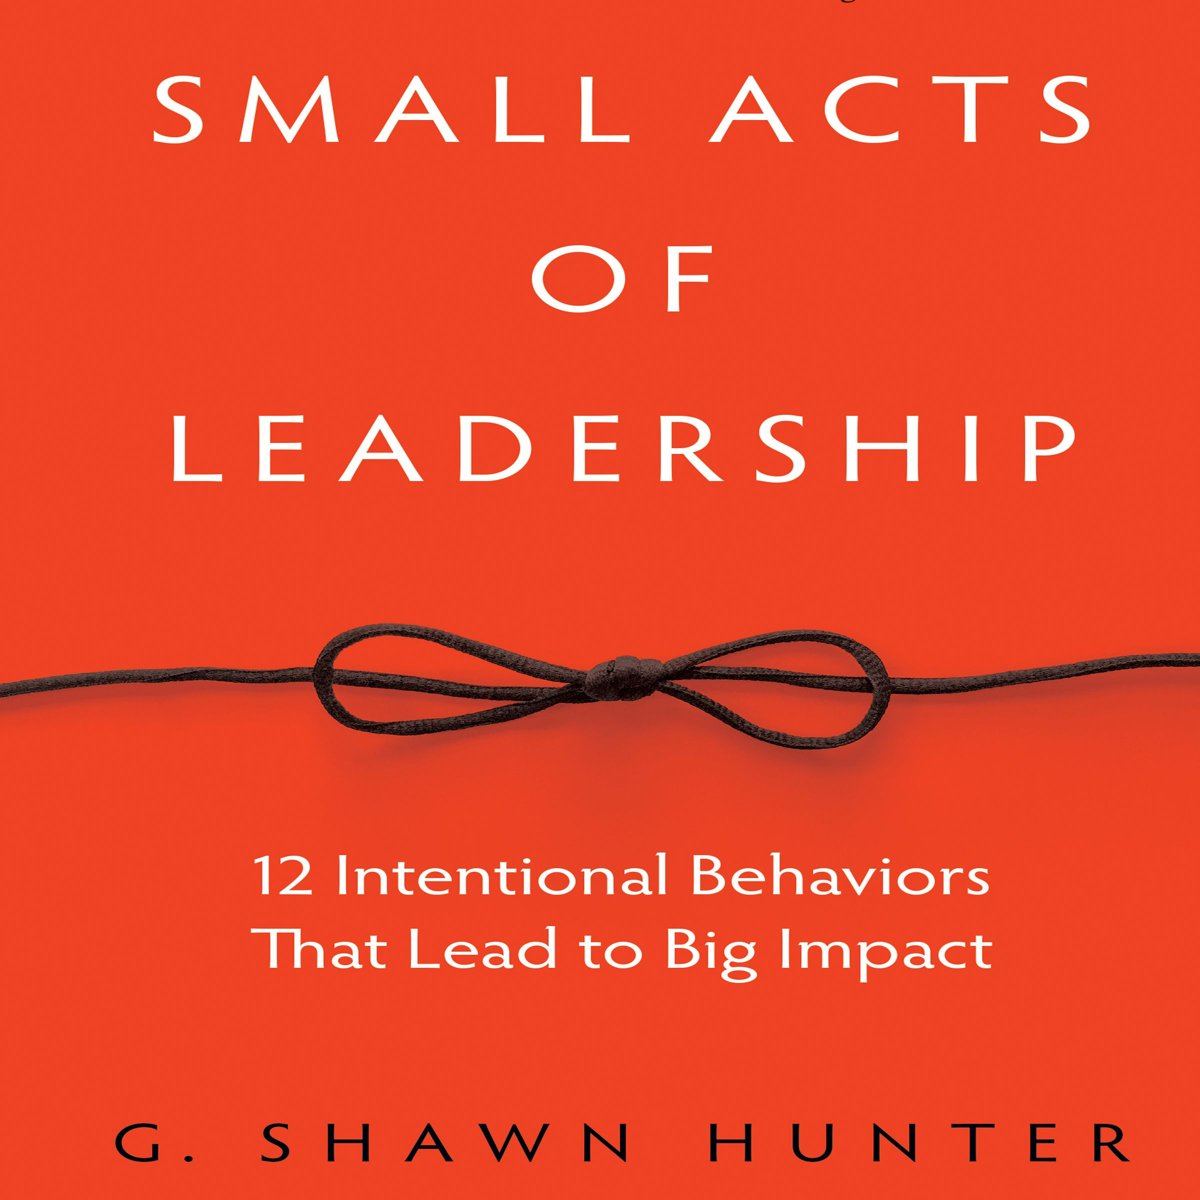 Small Acts Leadership